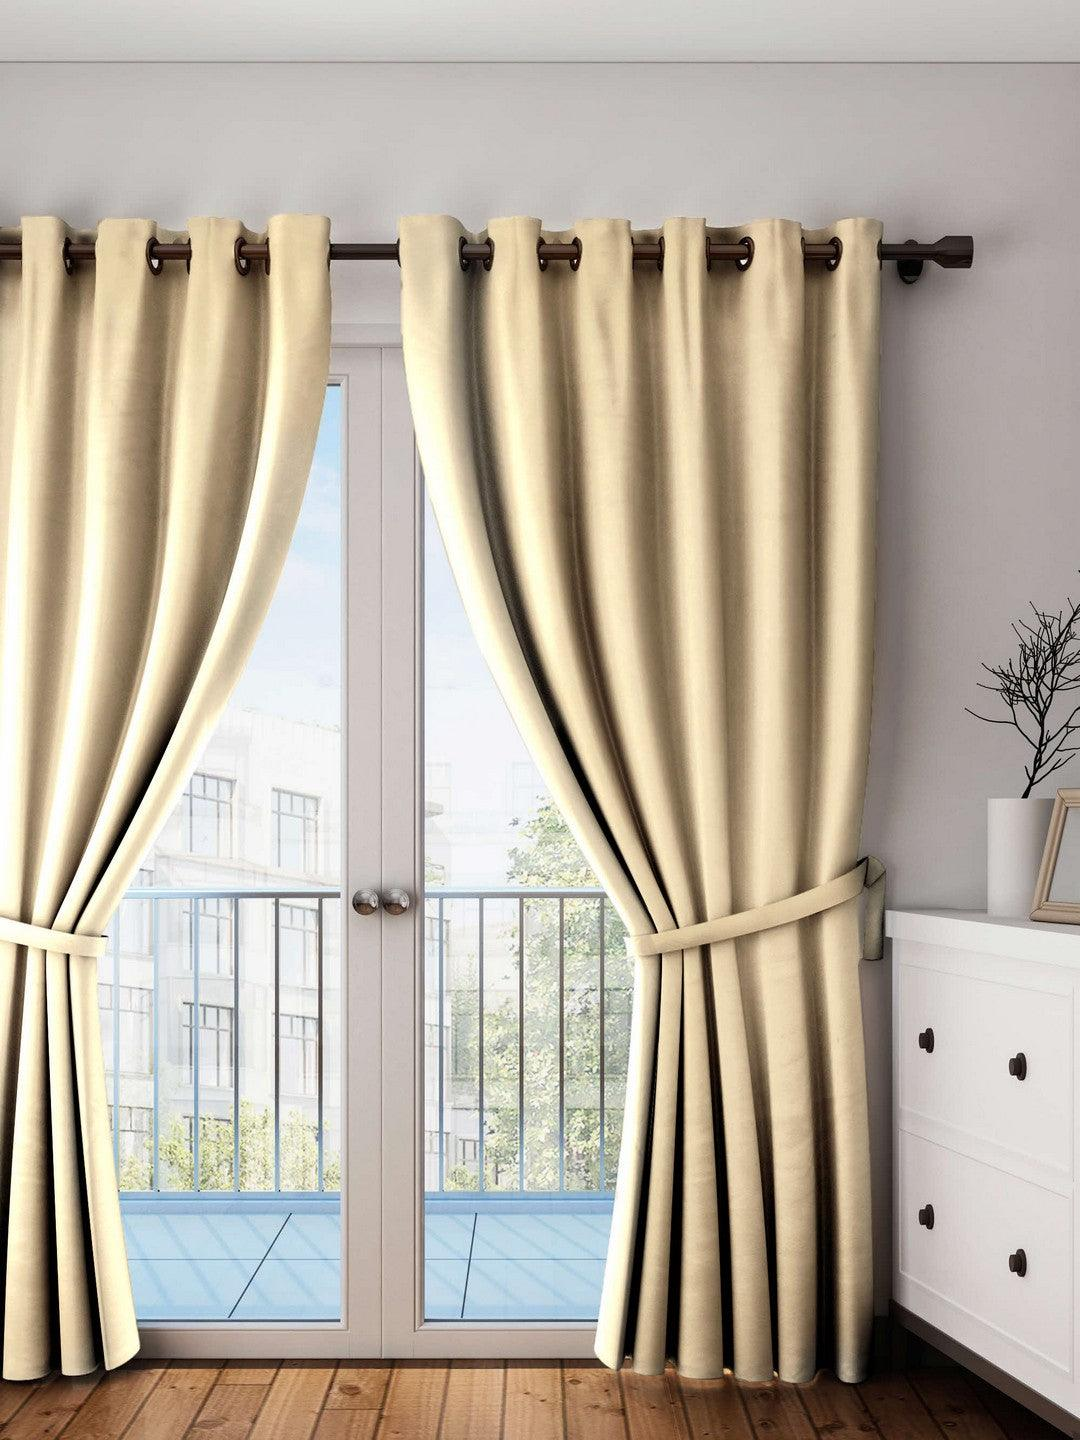 Lushomes Sand Plain Cotton Curtains With 8 Eyelets for Long Door